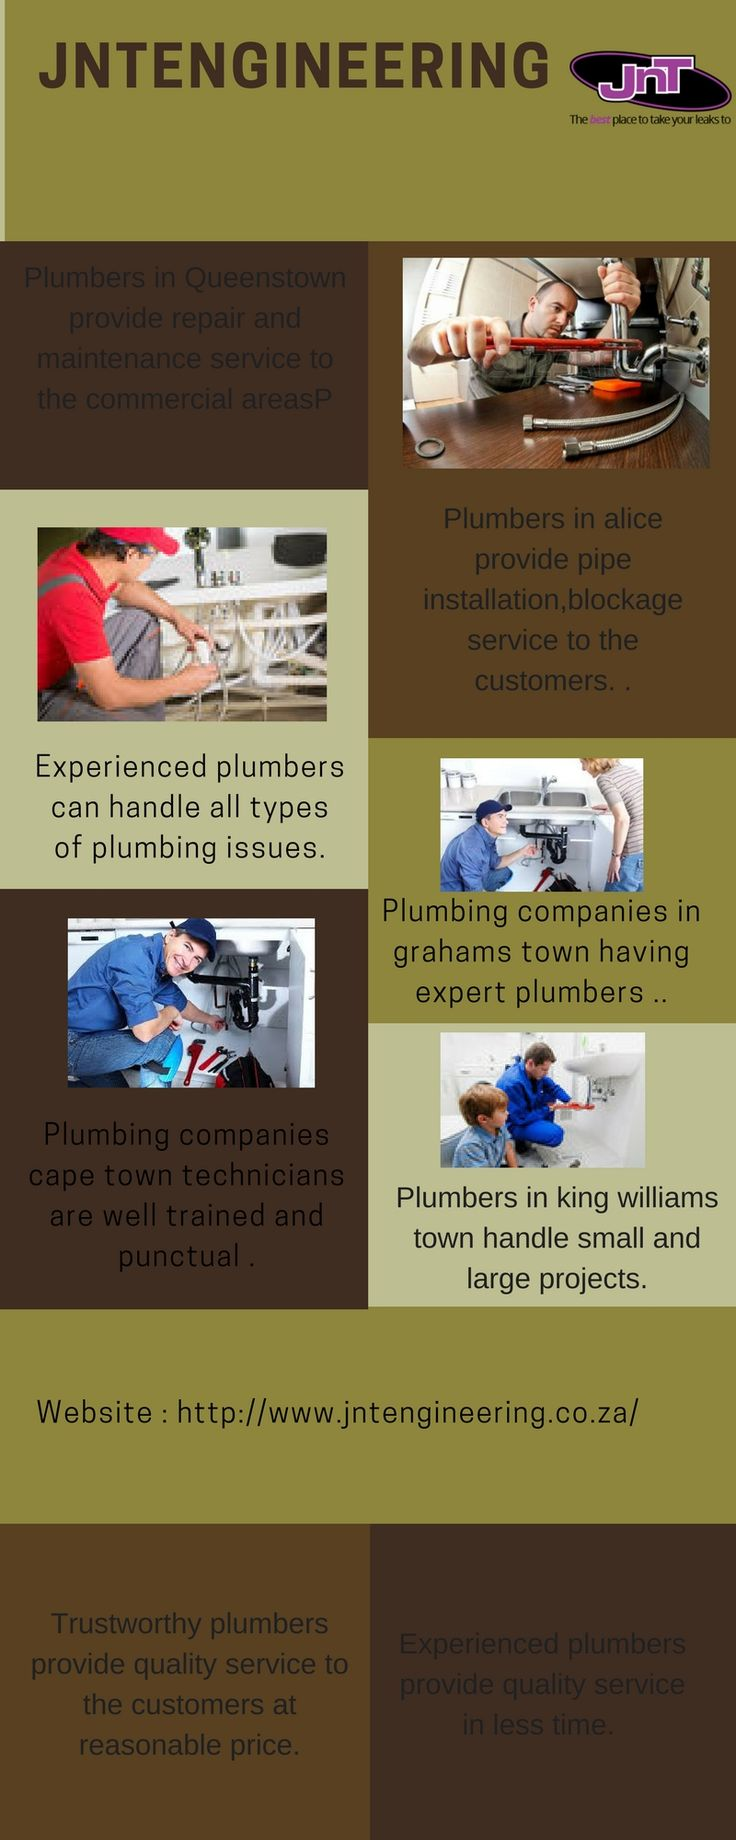 Our expert team is here to assist you with any plumbing issue, from blocked drains and leaky taps to installations. Our Plumbers are well trained and appreciated for their work .  #plumbing services cape town visit us at : http://www.jntengineering.co.za/